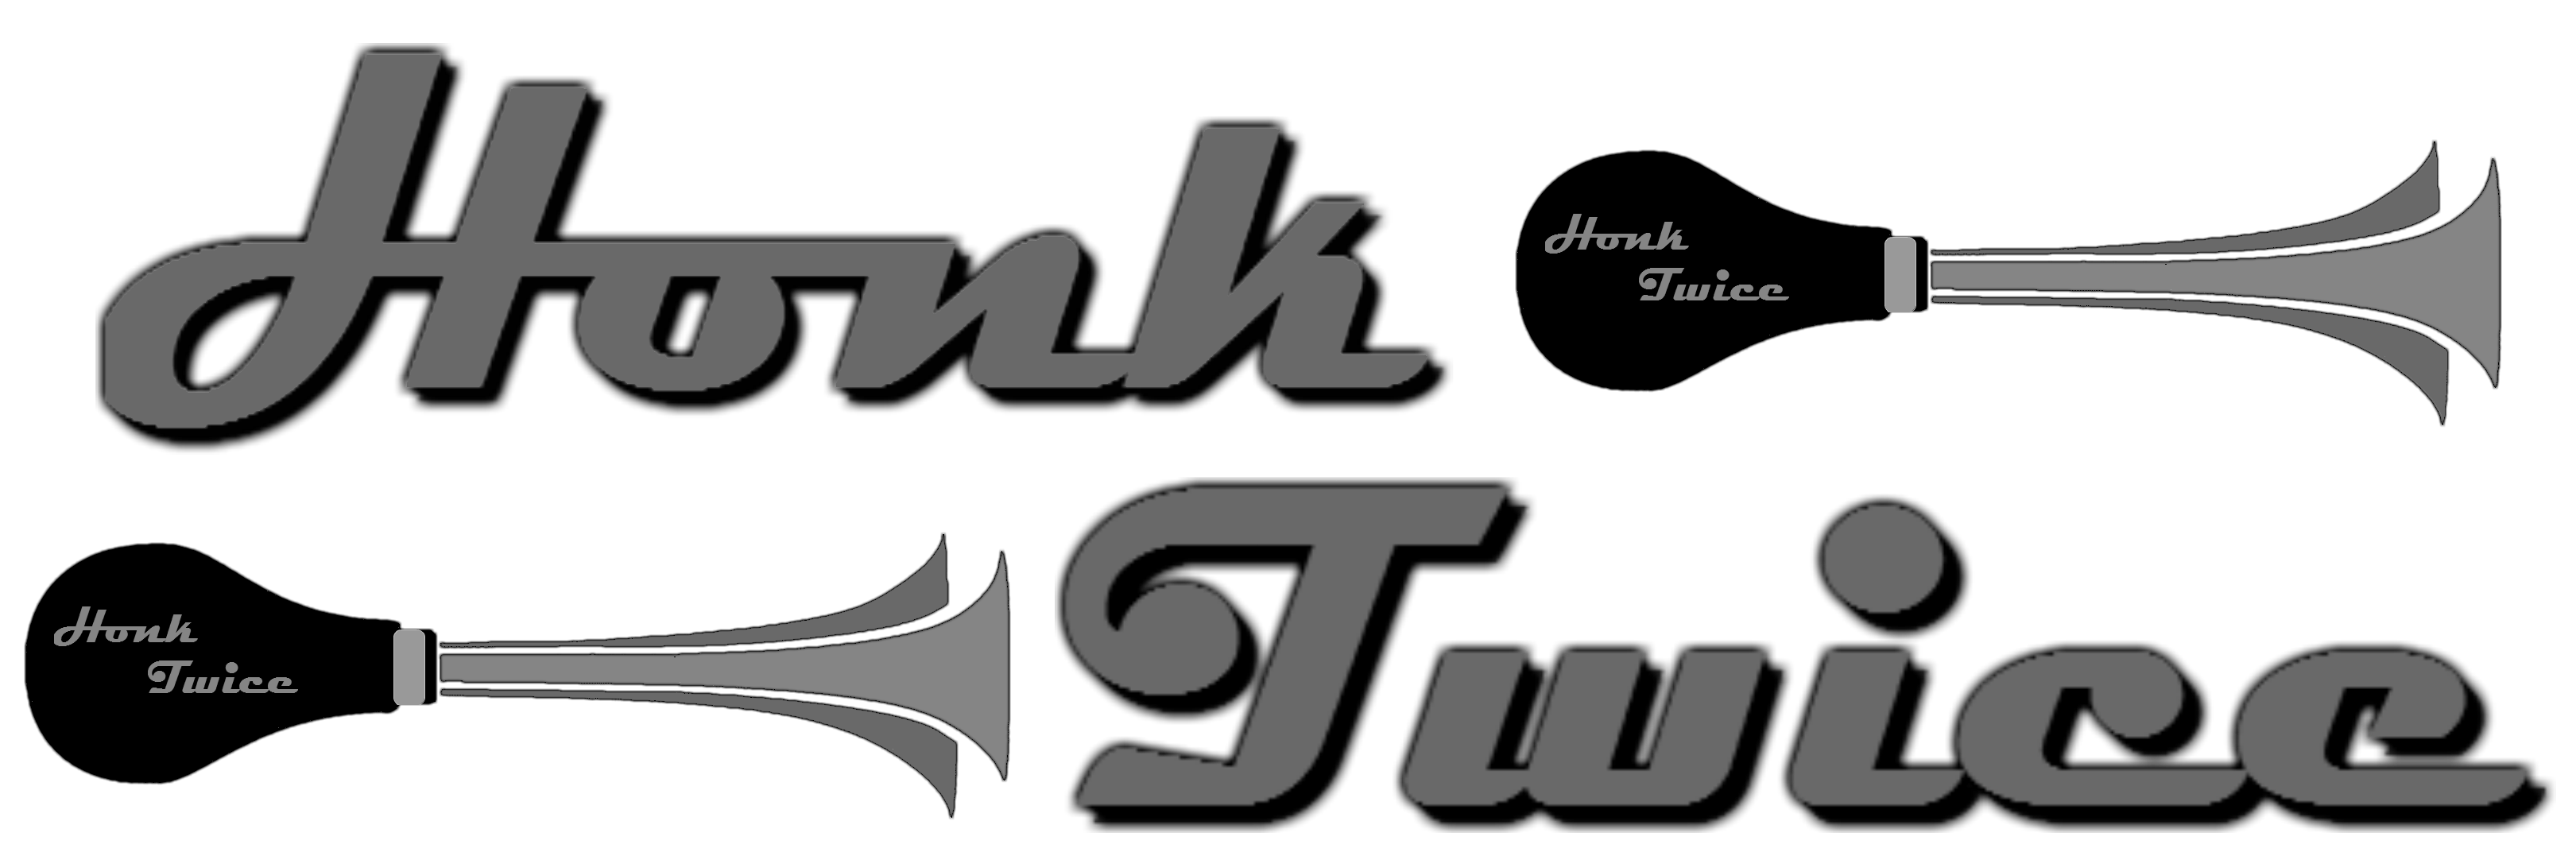 Honk Twice Website and Social Media Support